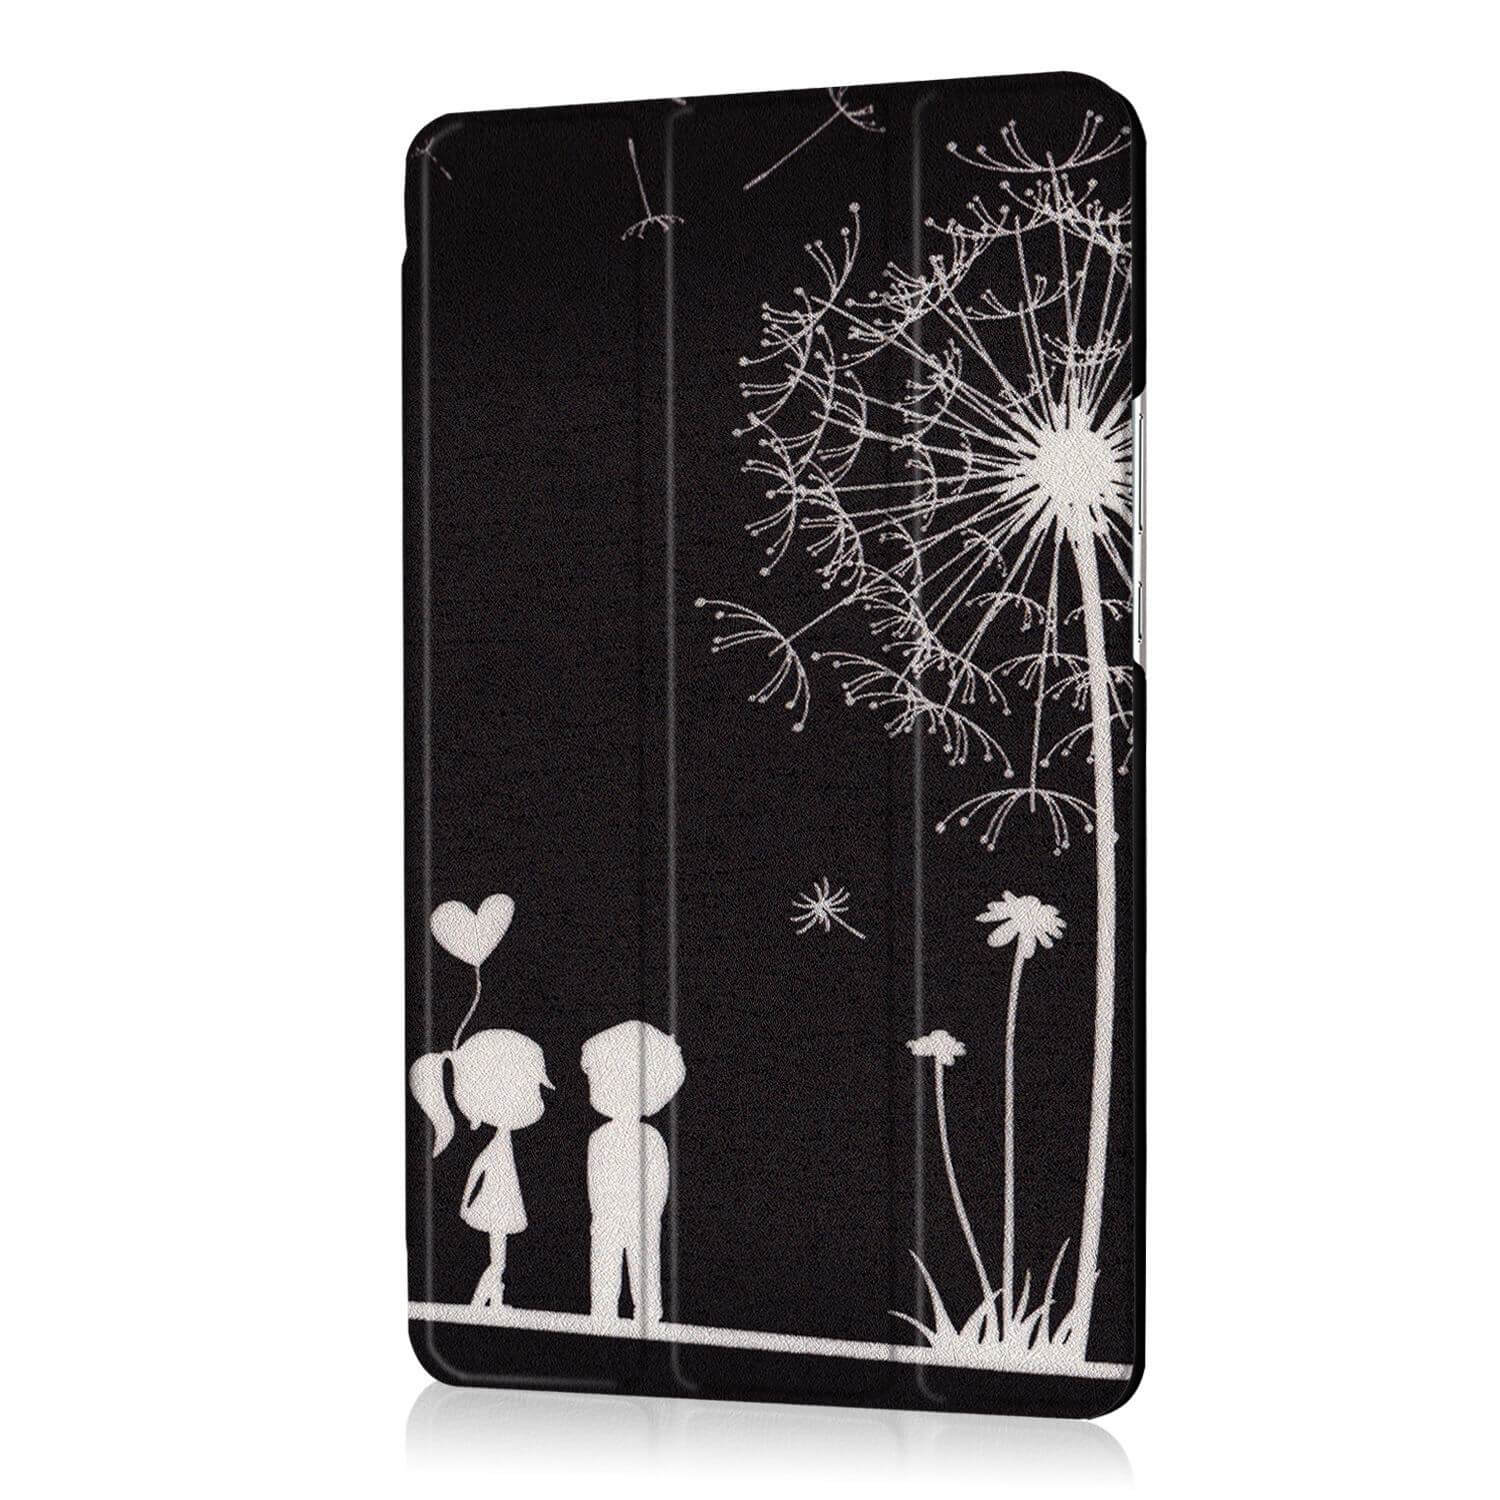 mediapad m3 bright painted case with pictures of paris butterflies and other Black couple: